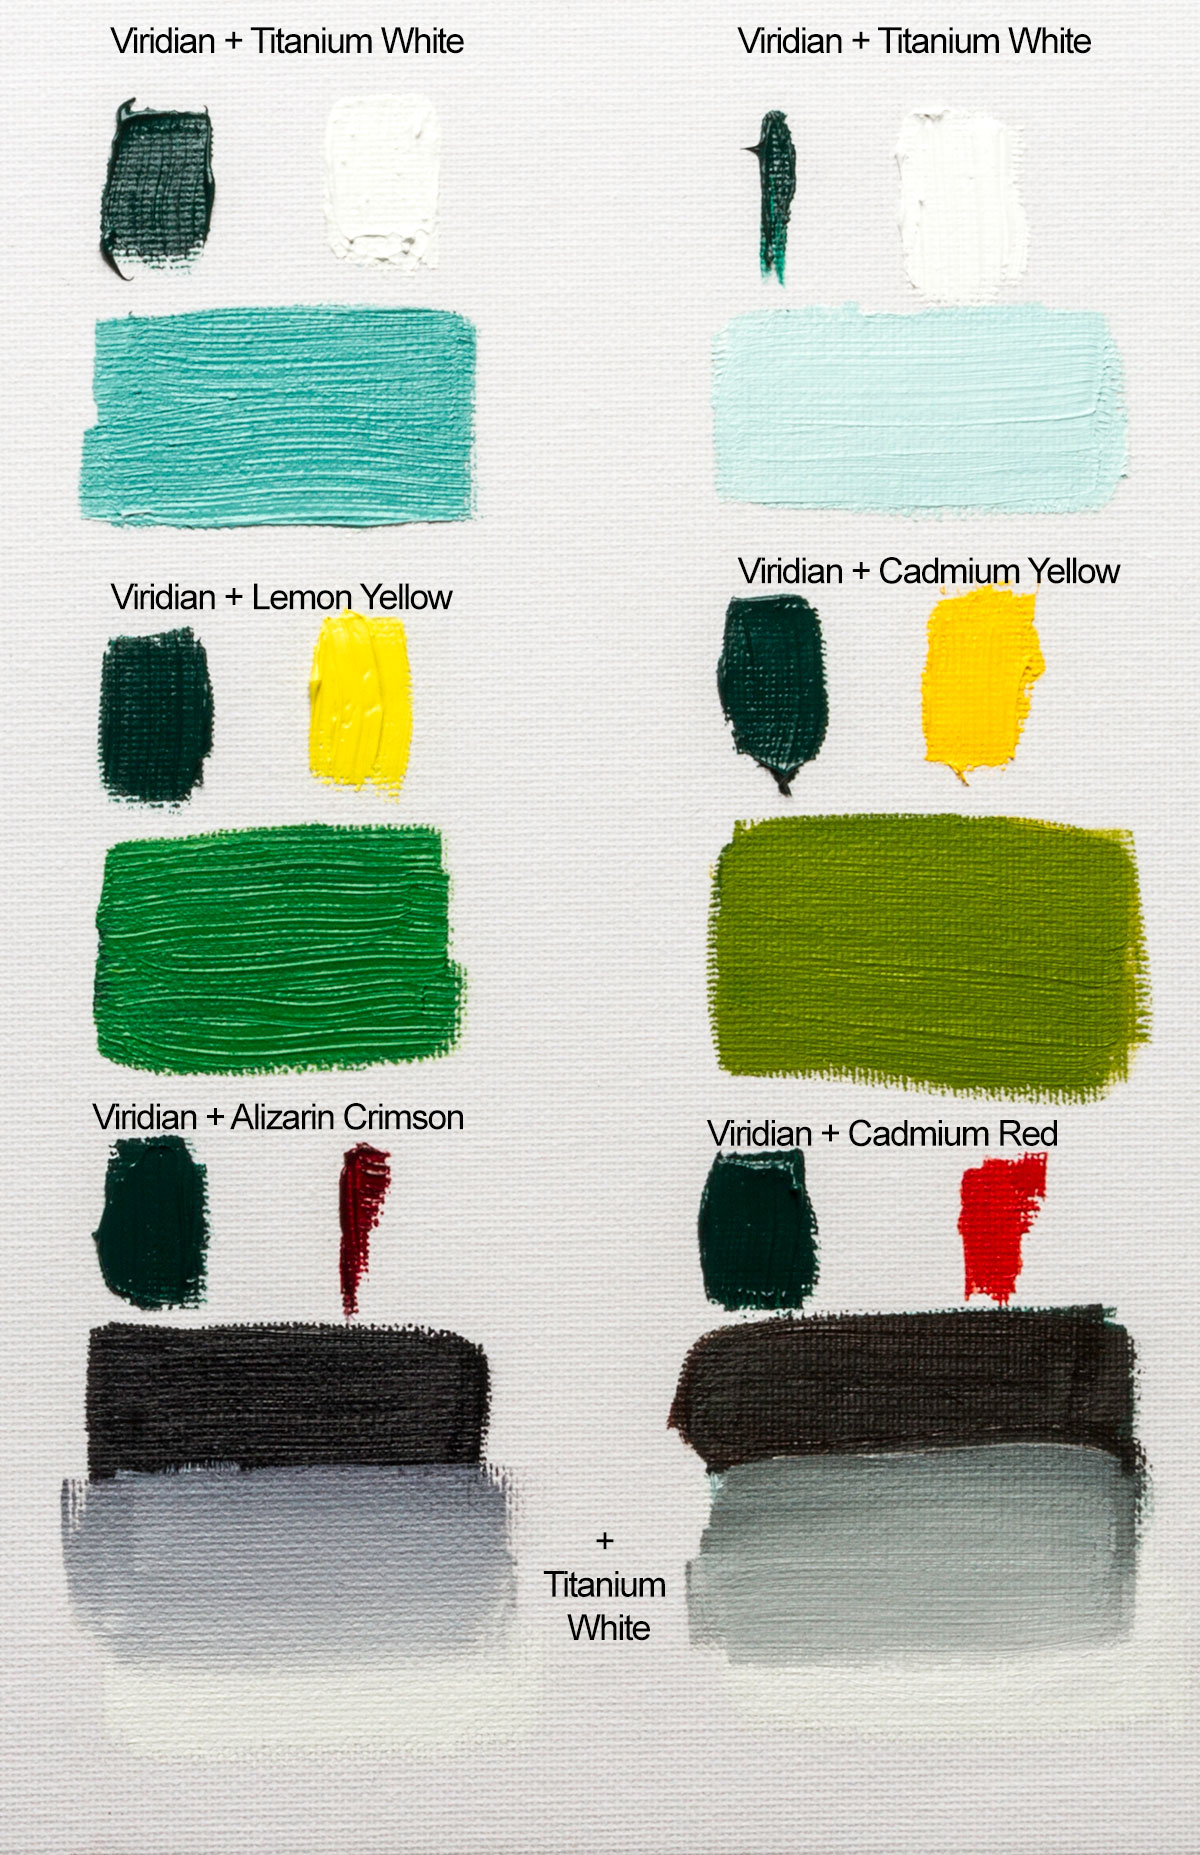 Colour mixing with williamsburg viridian oil paint jacksons art williamsburg viridian has about the tinting strength of a yellow this chart shows that equal parts viridian and white make a lovely sea green nvjuhfo Image collections